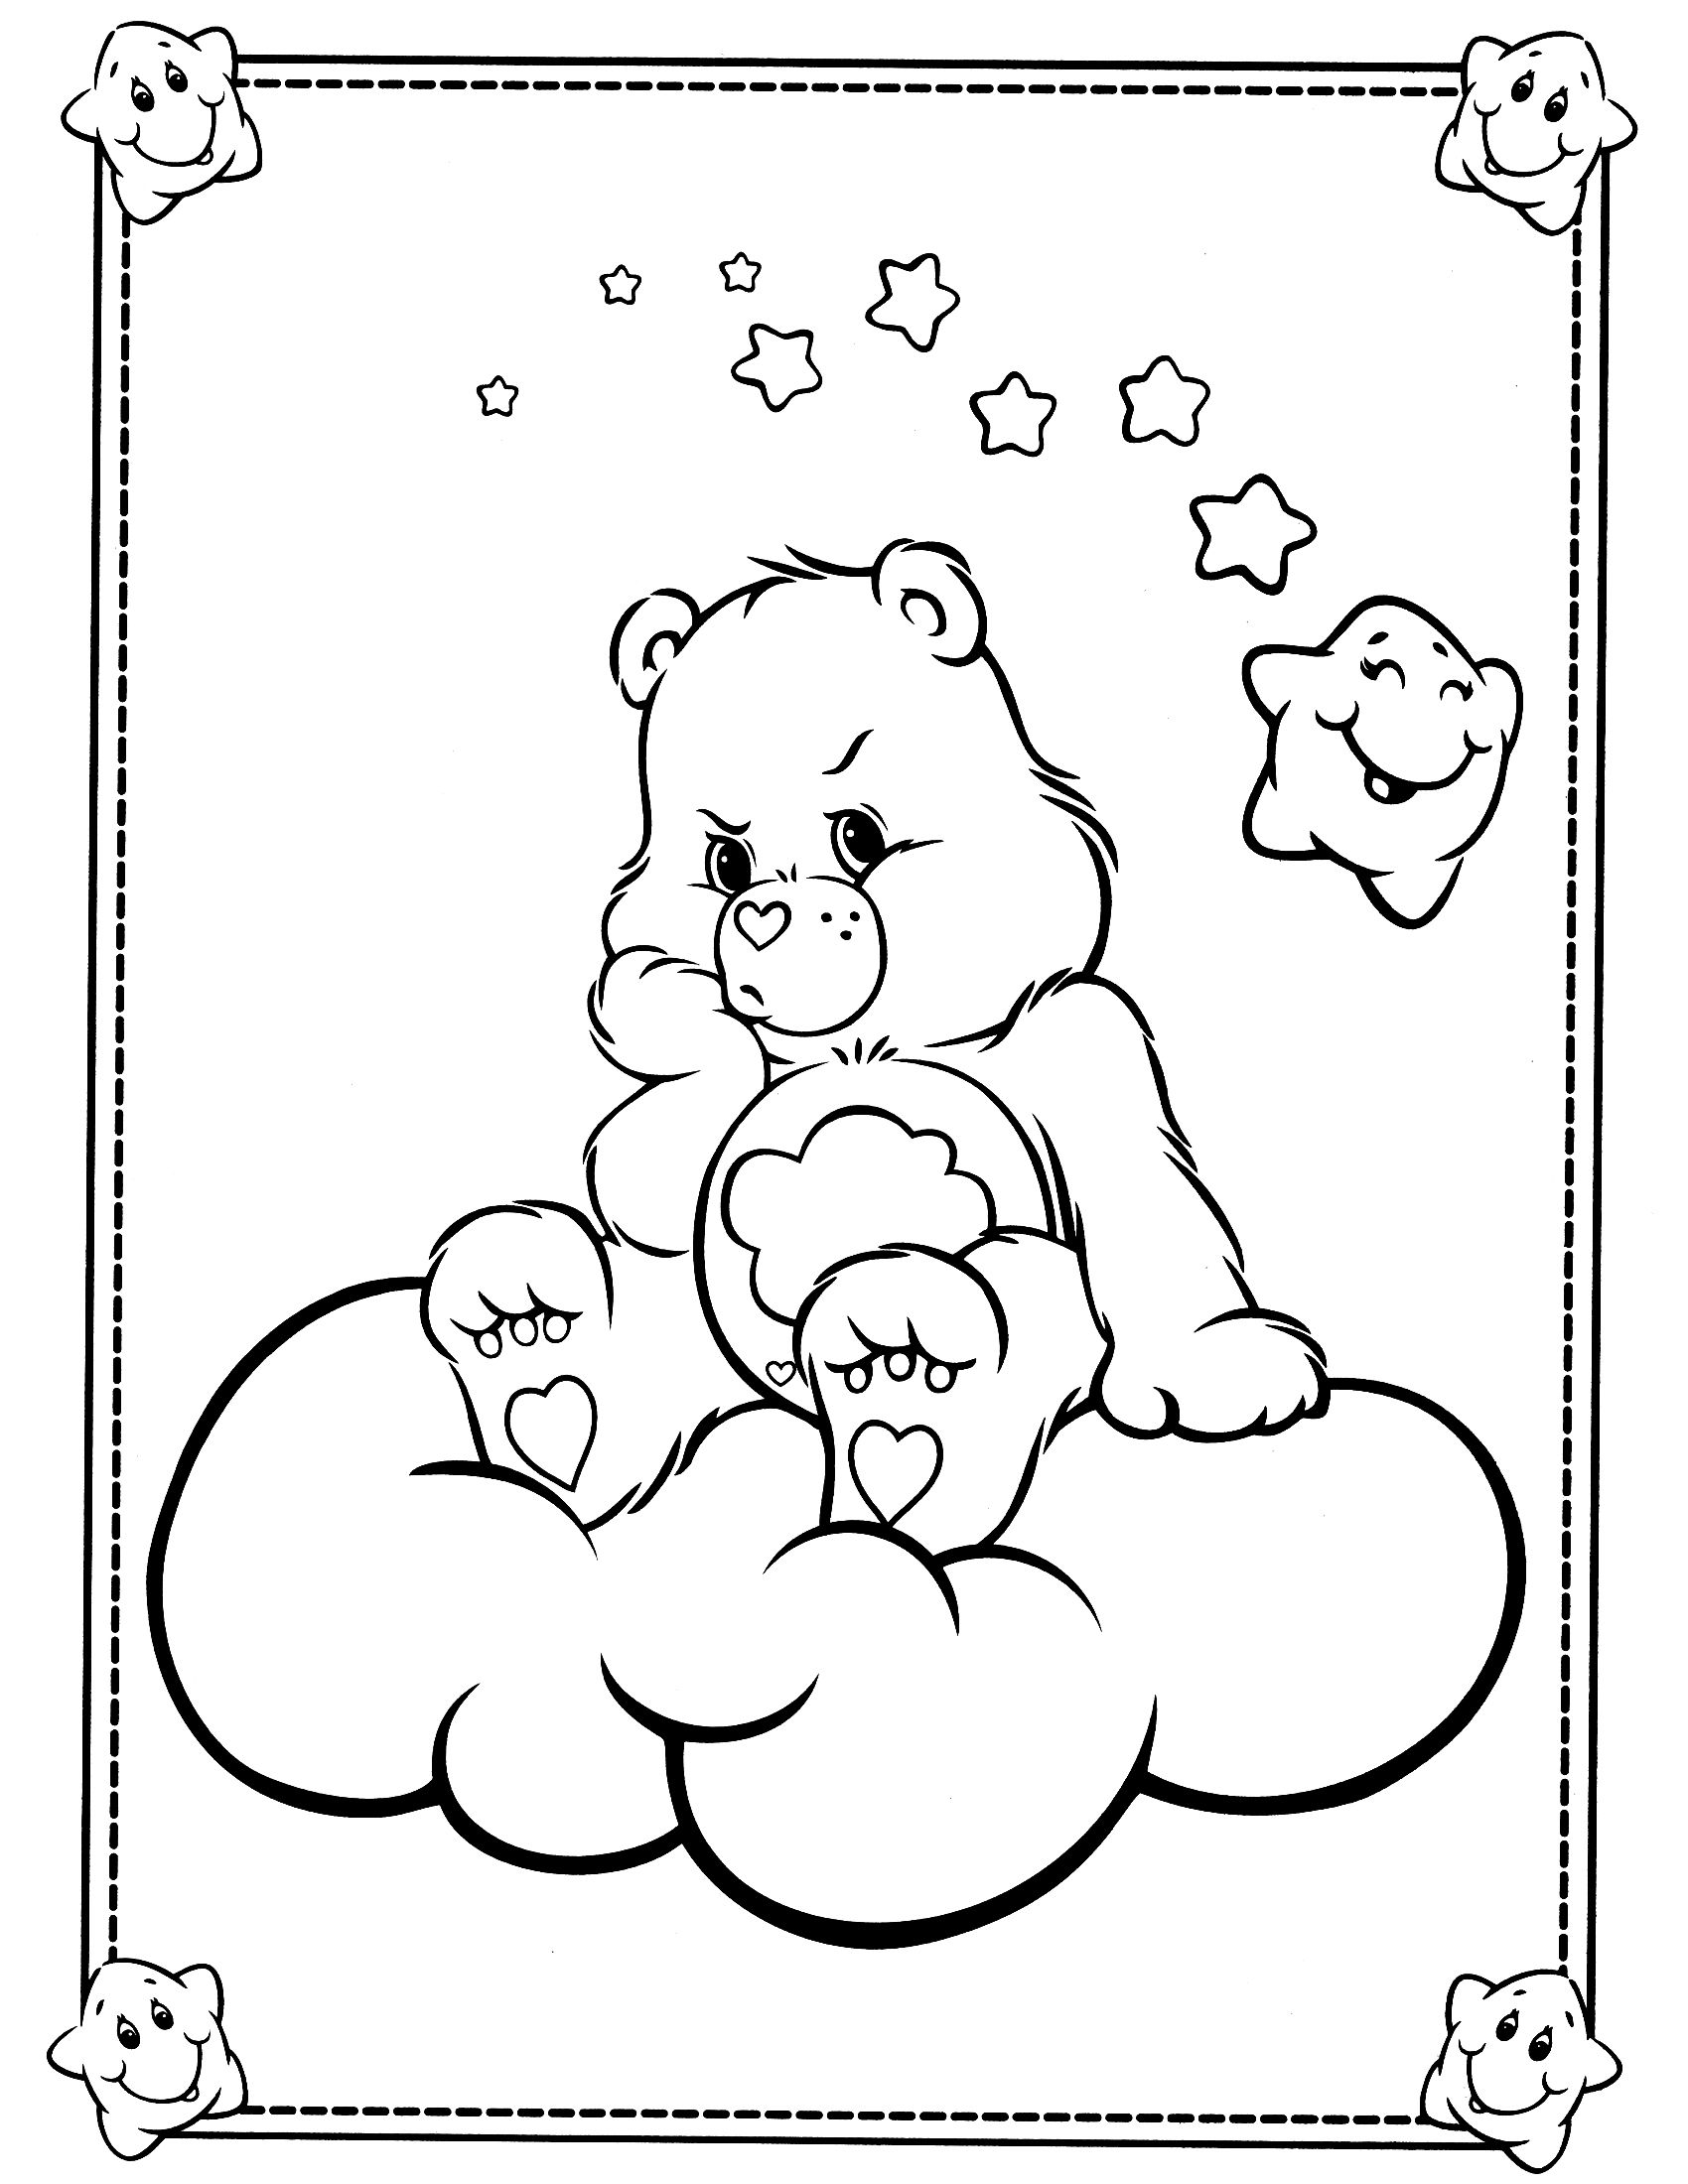 Coloring Pages Coloring Pages Of Care Bears 1000 images about care bear grumpy 4 on pinterest cartoon gel pens and icons